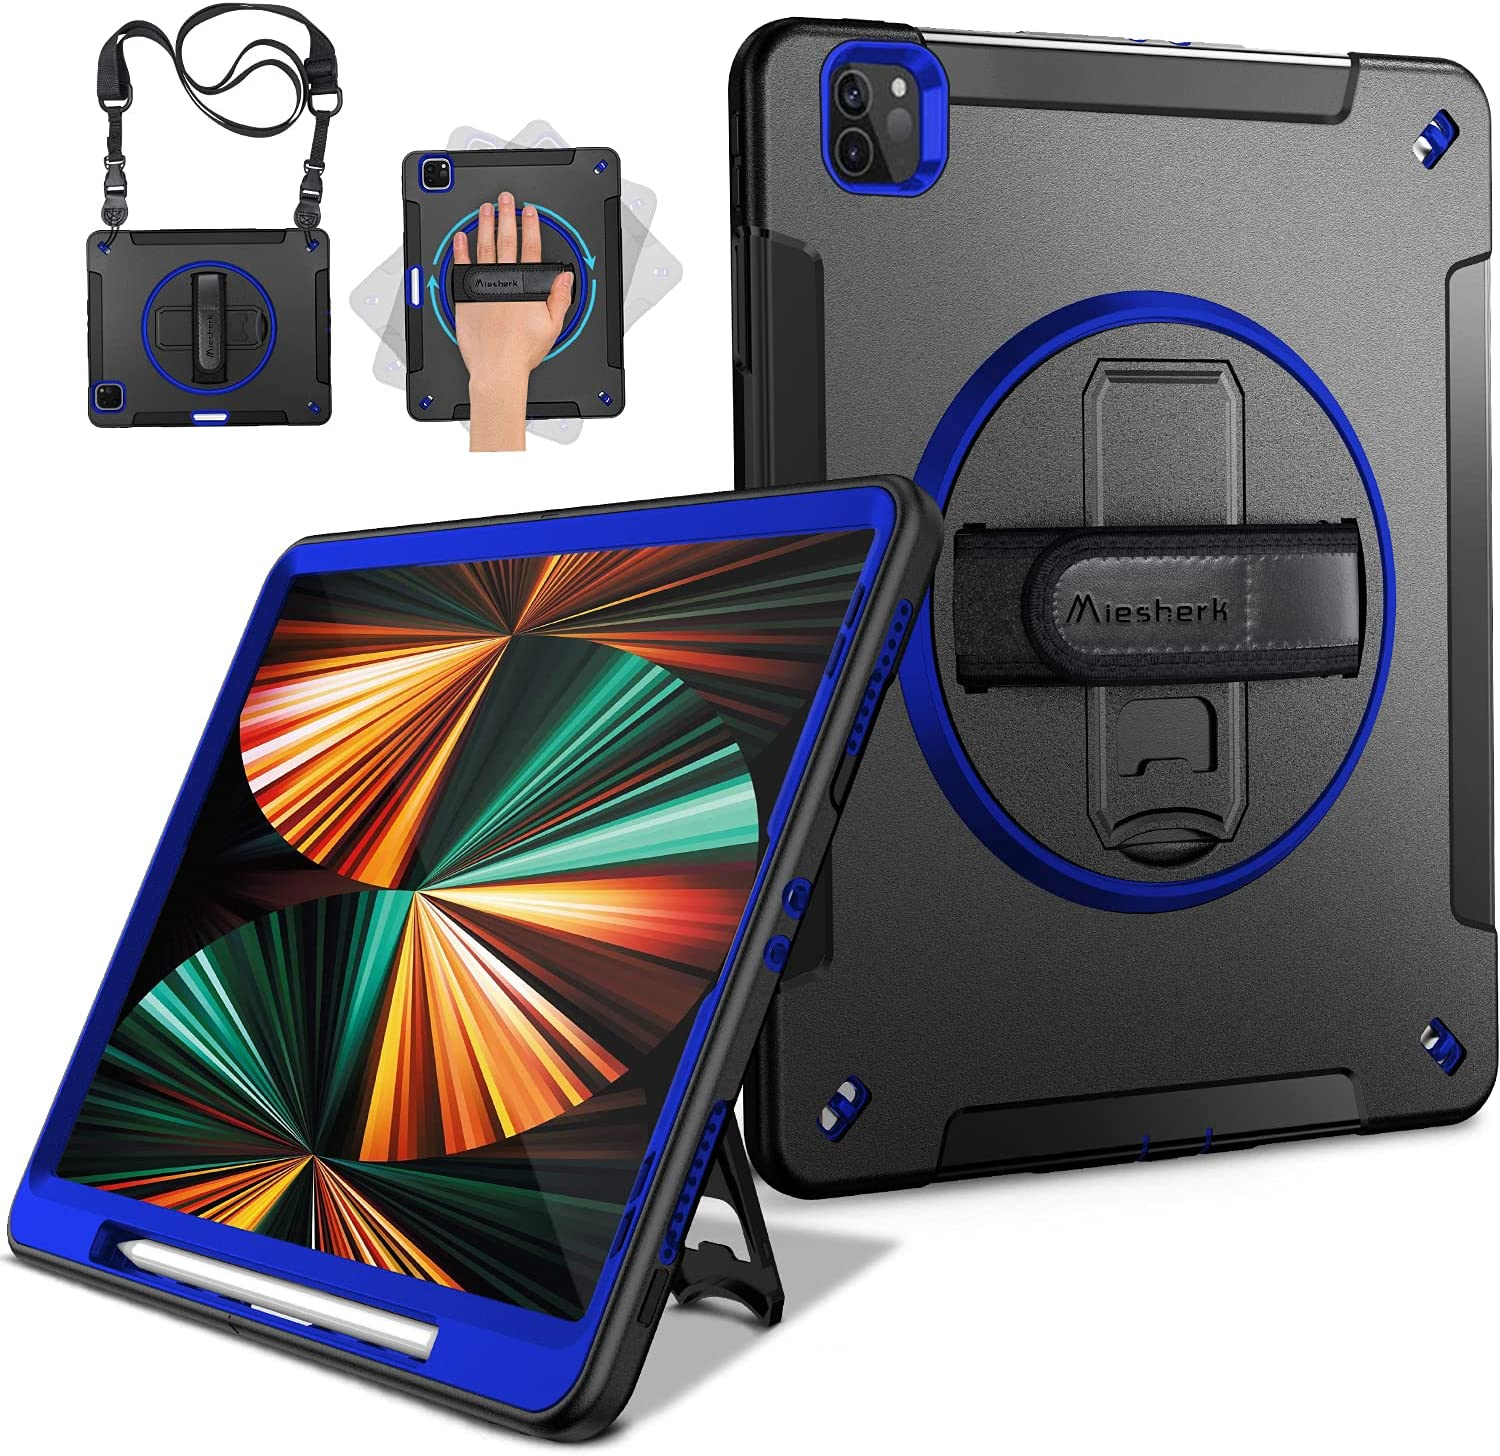 Miesherk iPad Pro 12.9 Case 2021/2020: Military Grade Heavy Duty Shockproof Cover for iPad Pro 12.9 Inch 5th/4th Generation- Pencil Holder - Rotating Stand - Hand/Shoulder Strap - Blue